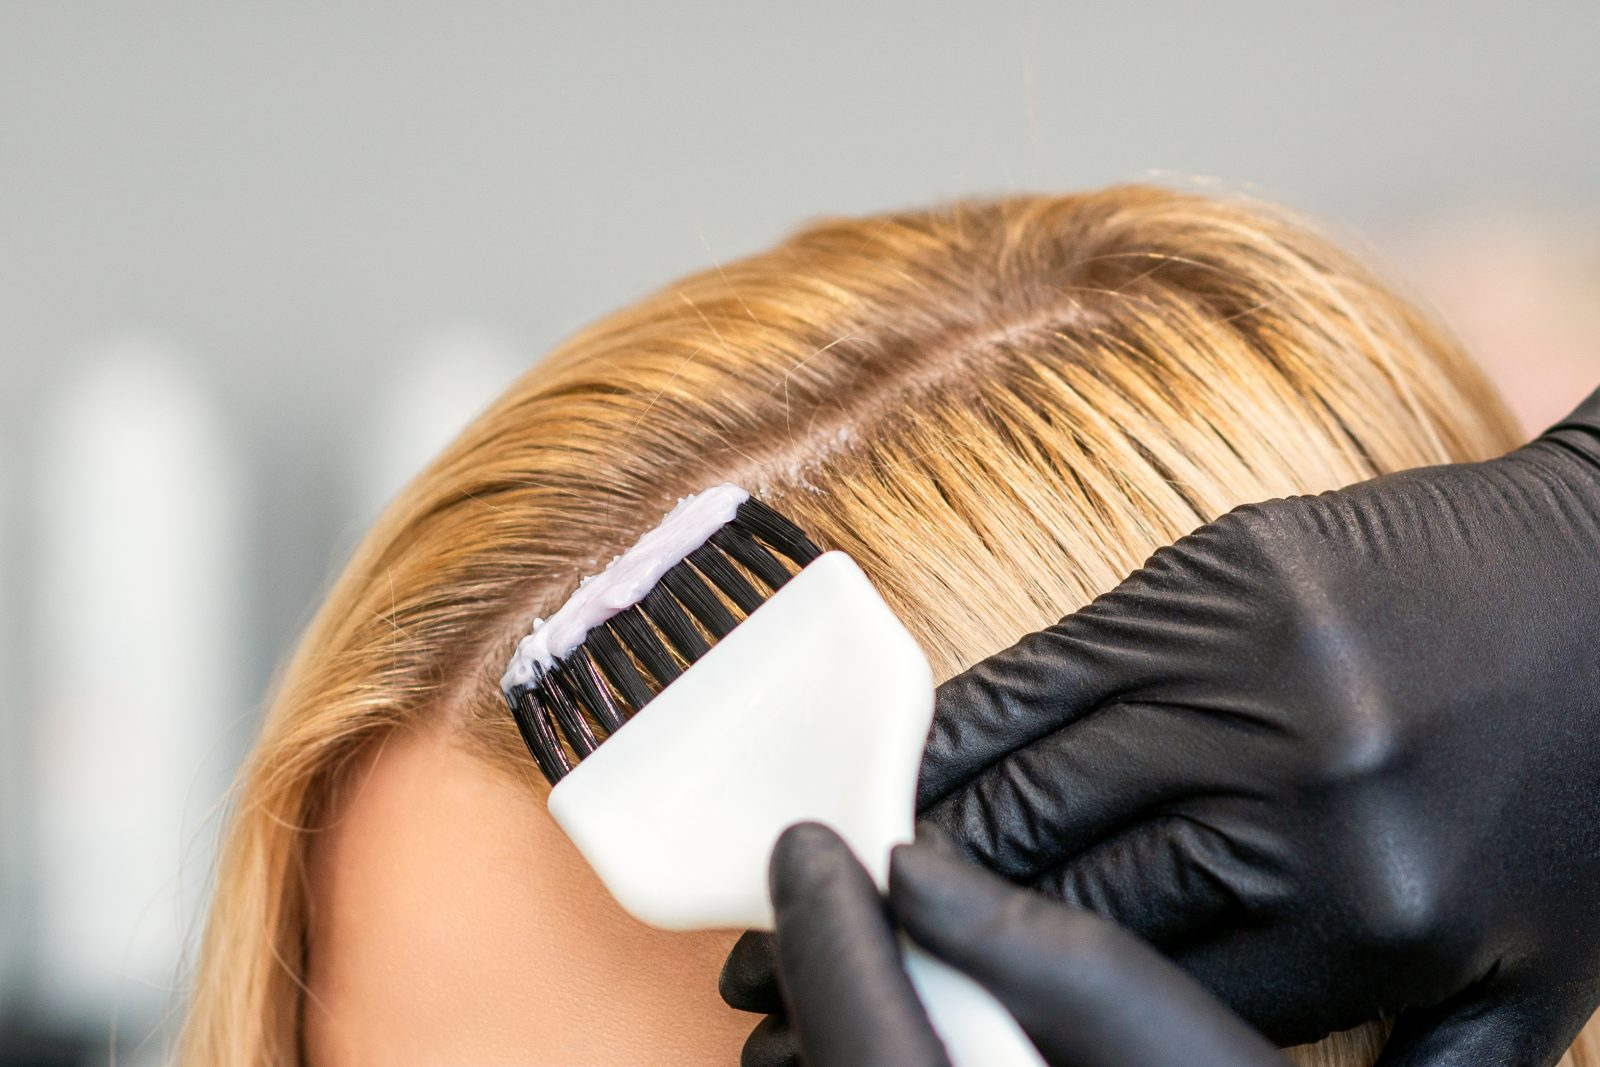 Use Caution When Chemically Processing Your Hair, hair being treated with chemical dye.